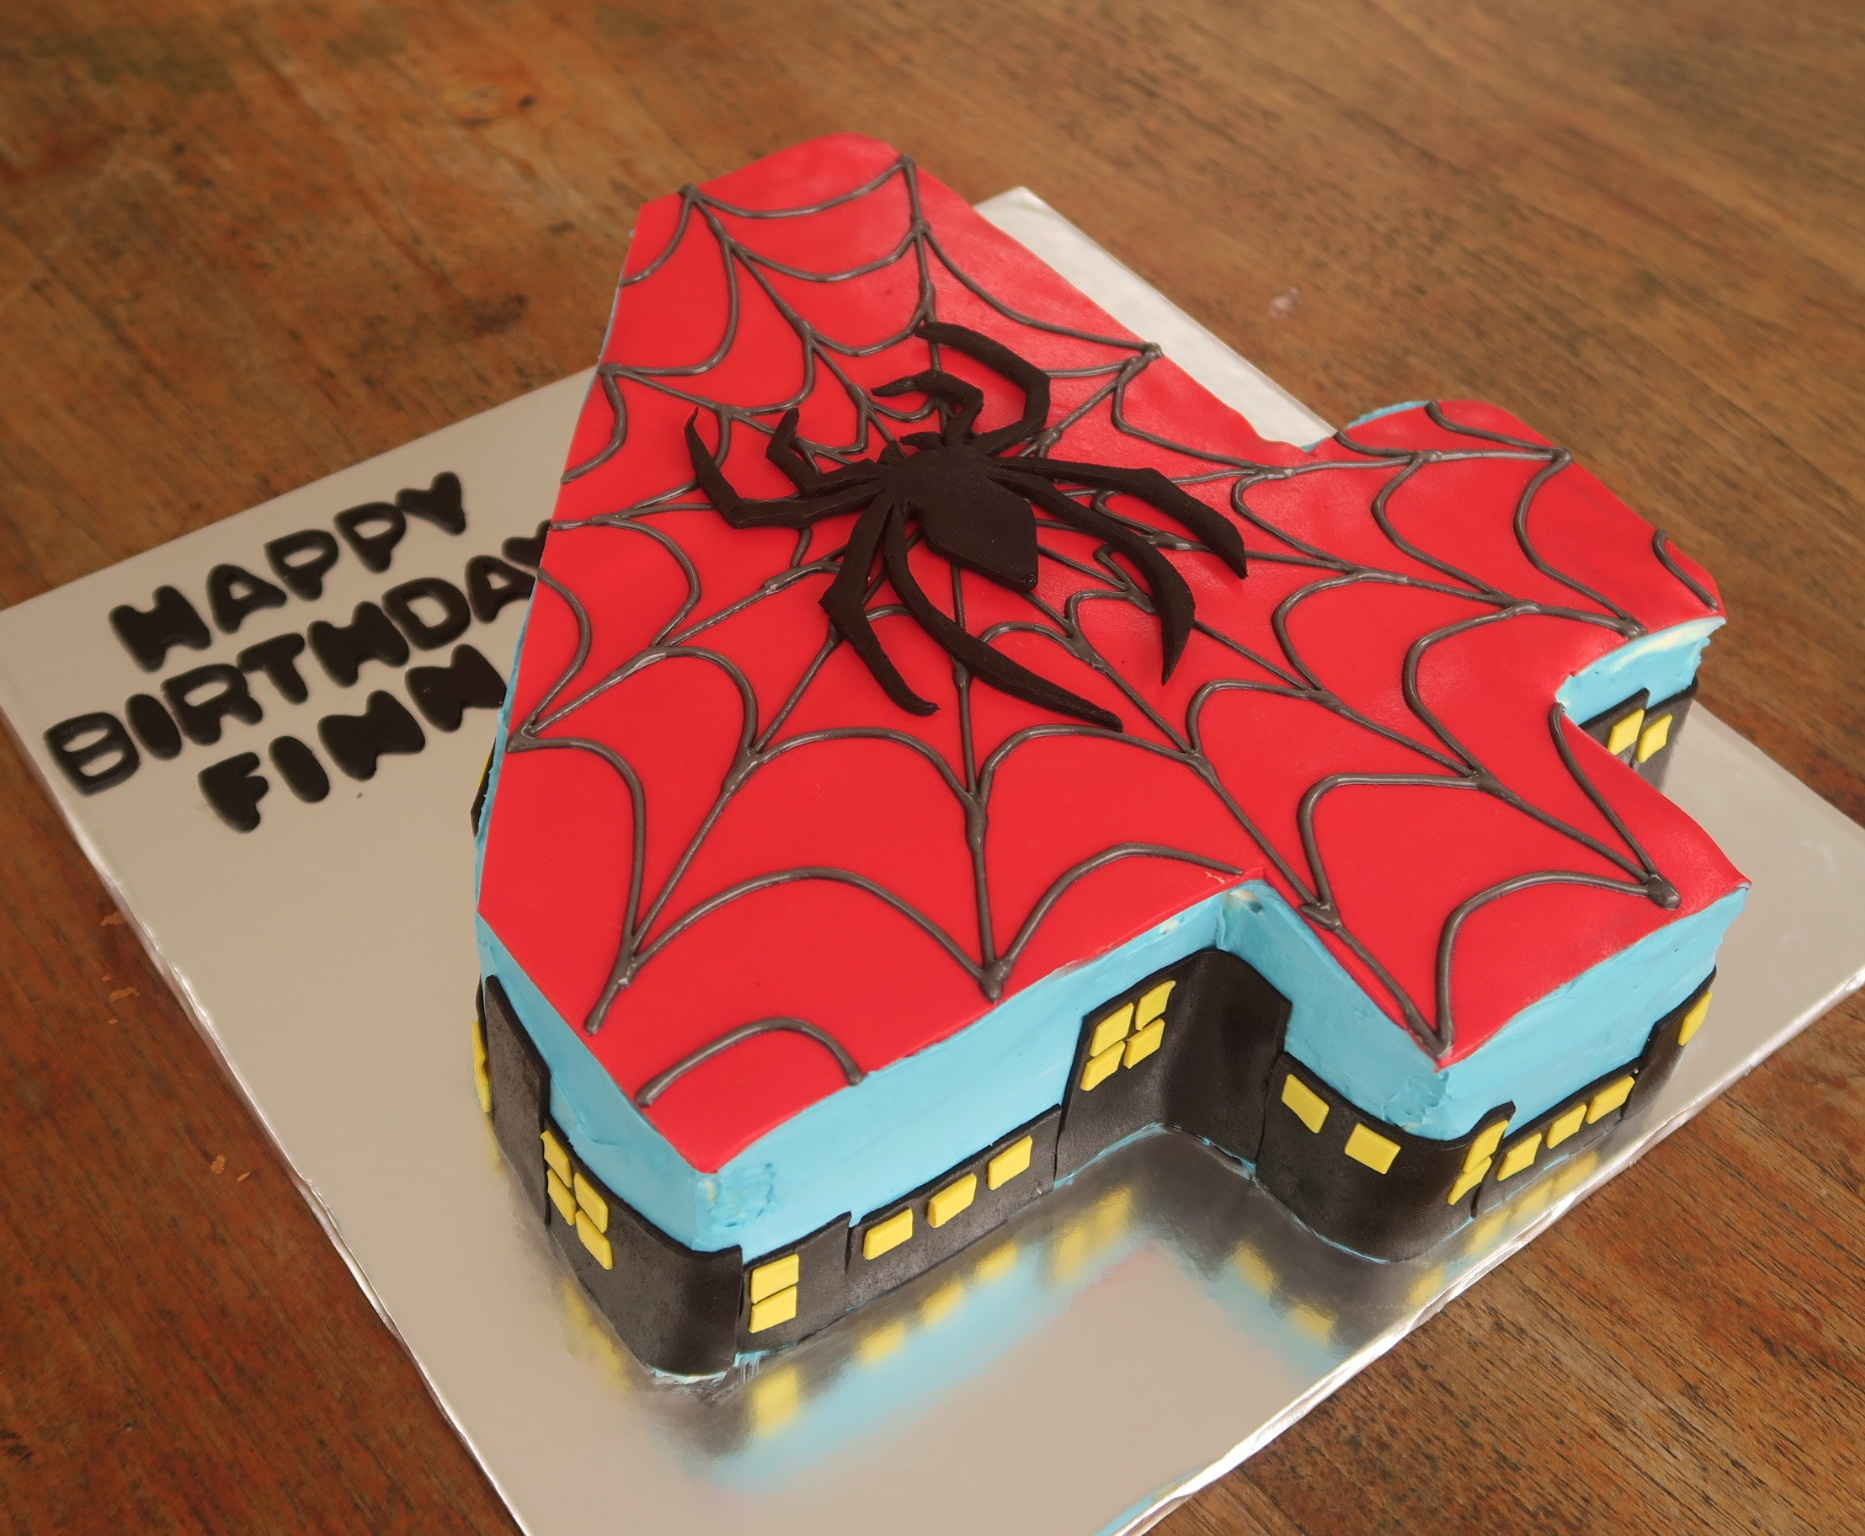 Spiderman number 4 cake.jpg